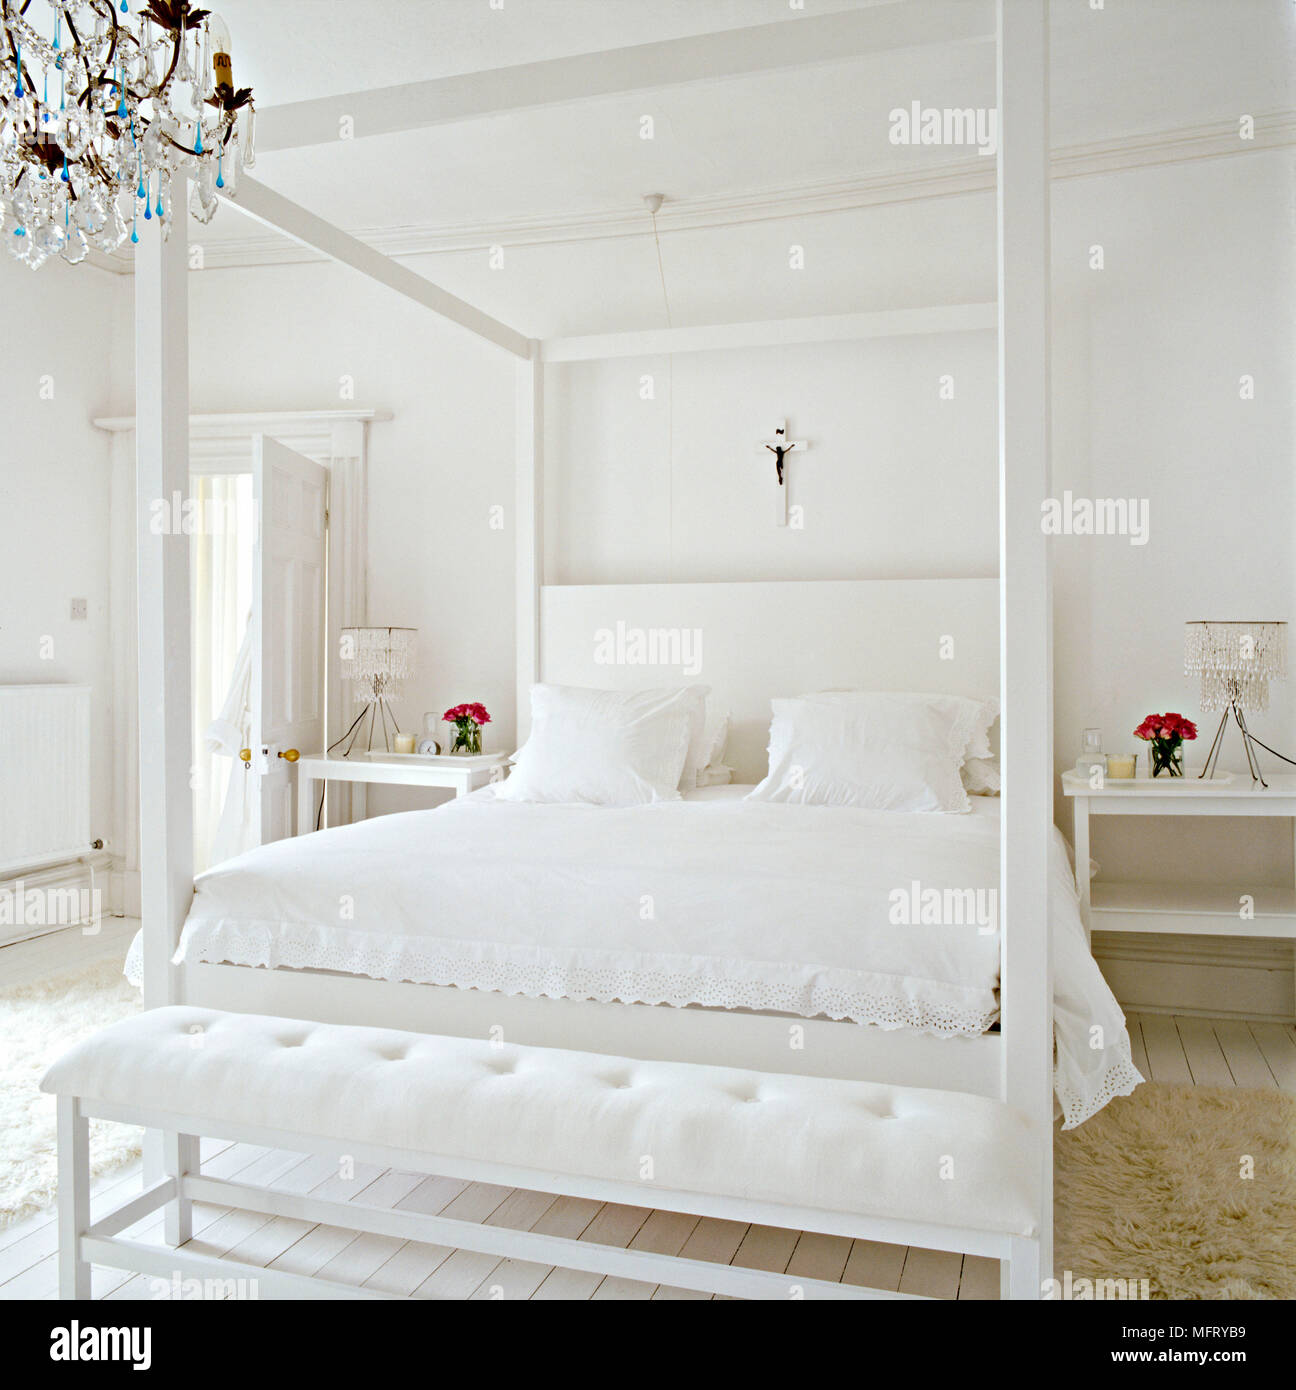 a modern minimalist white bedroom with double four poster bed with upholstered headboard bench seat bedside tables